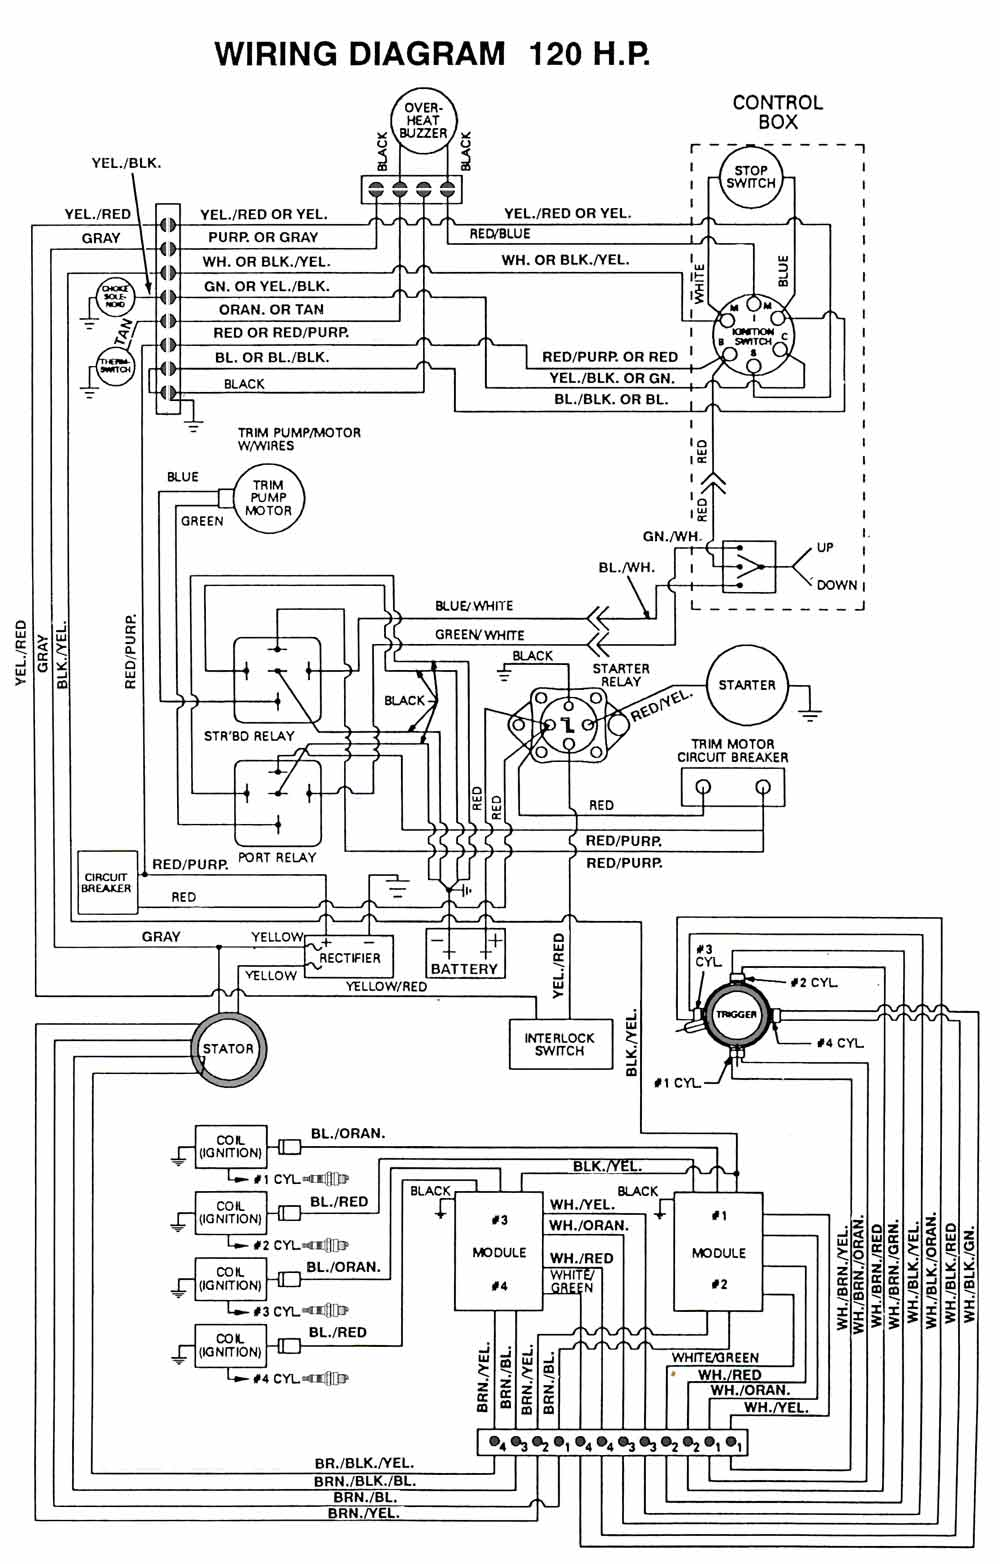 140 Mercruiser Engine Wiring Diagram Pelco Security Camera Wiring Diagram For Dumble Ab17 Jeanjaures37 Fr